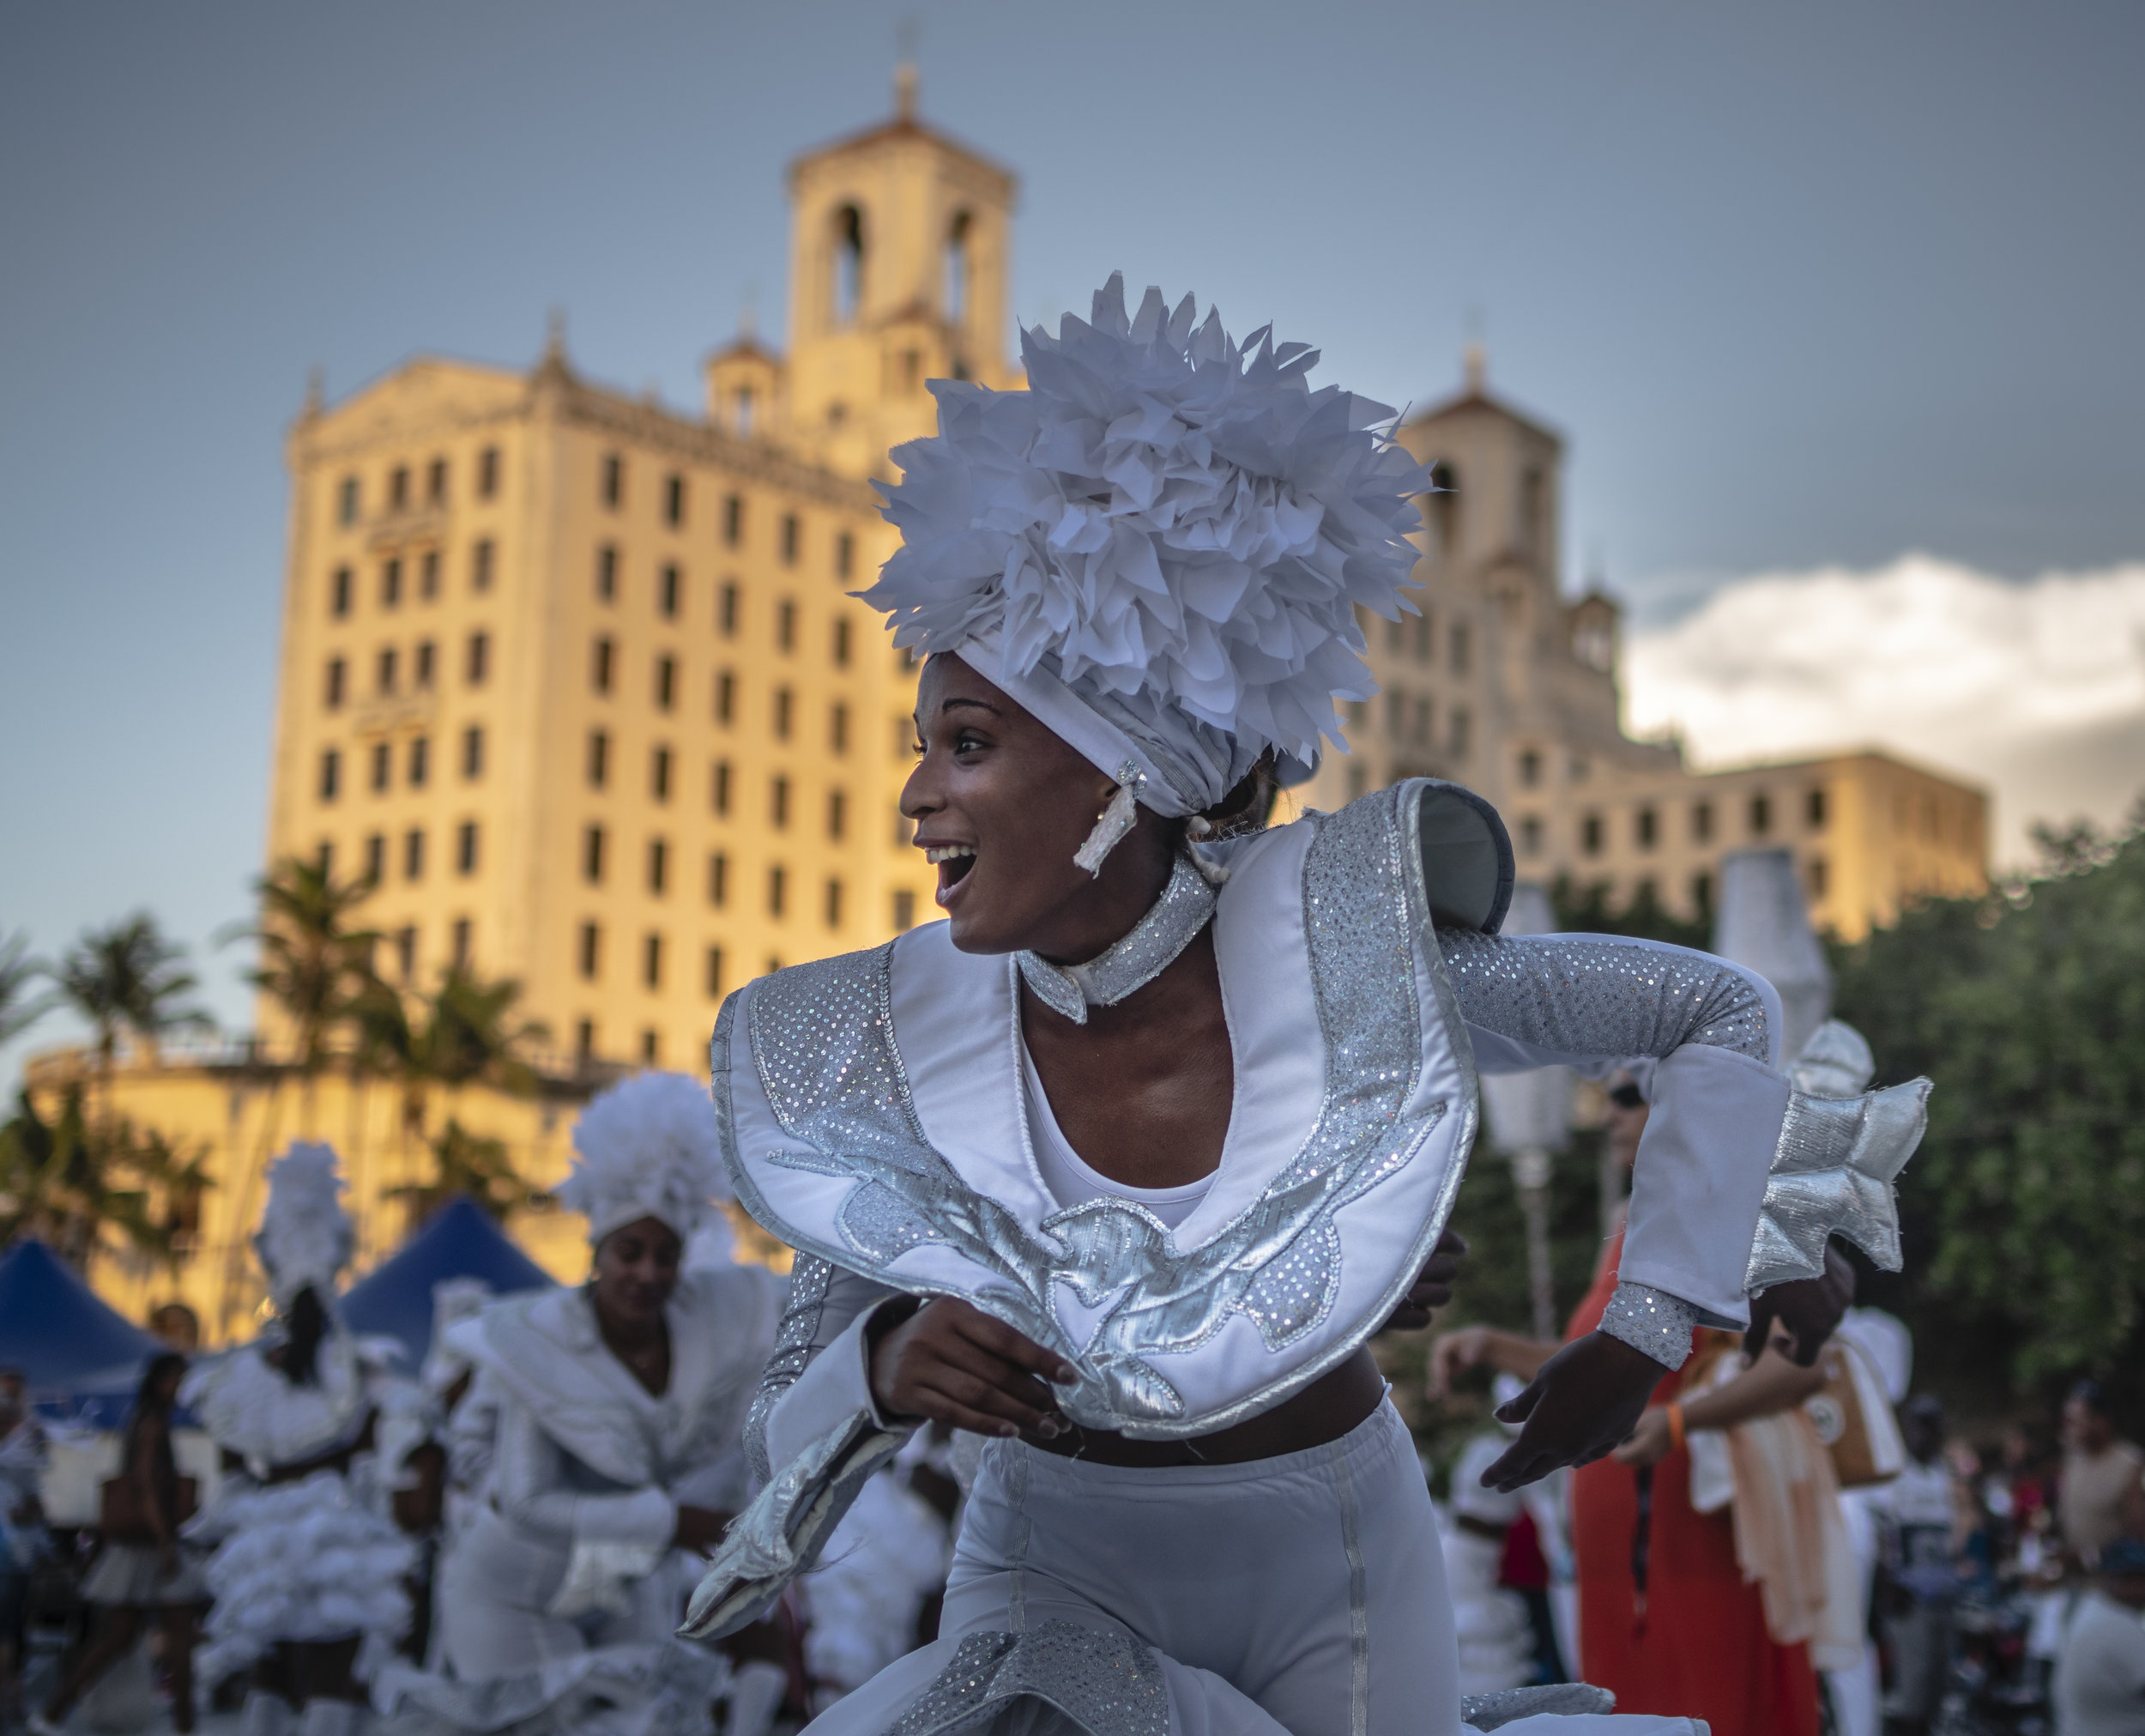 Carnaval in Havana.  July 2019